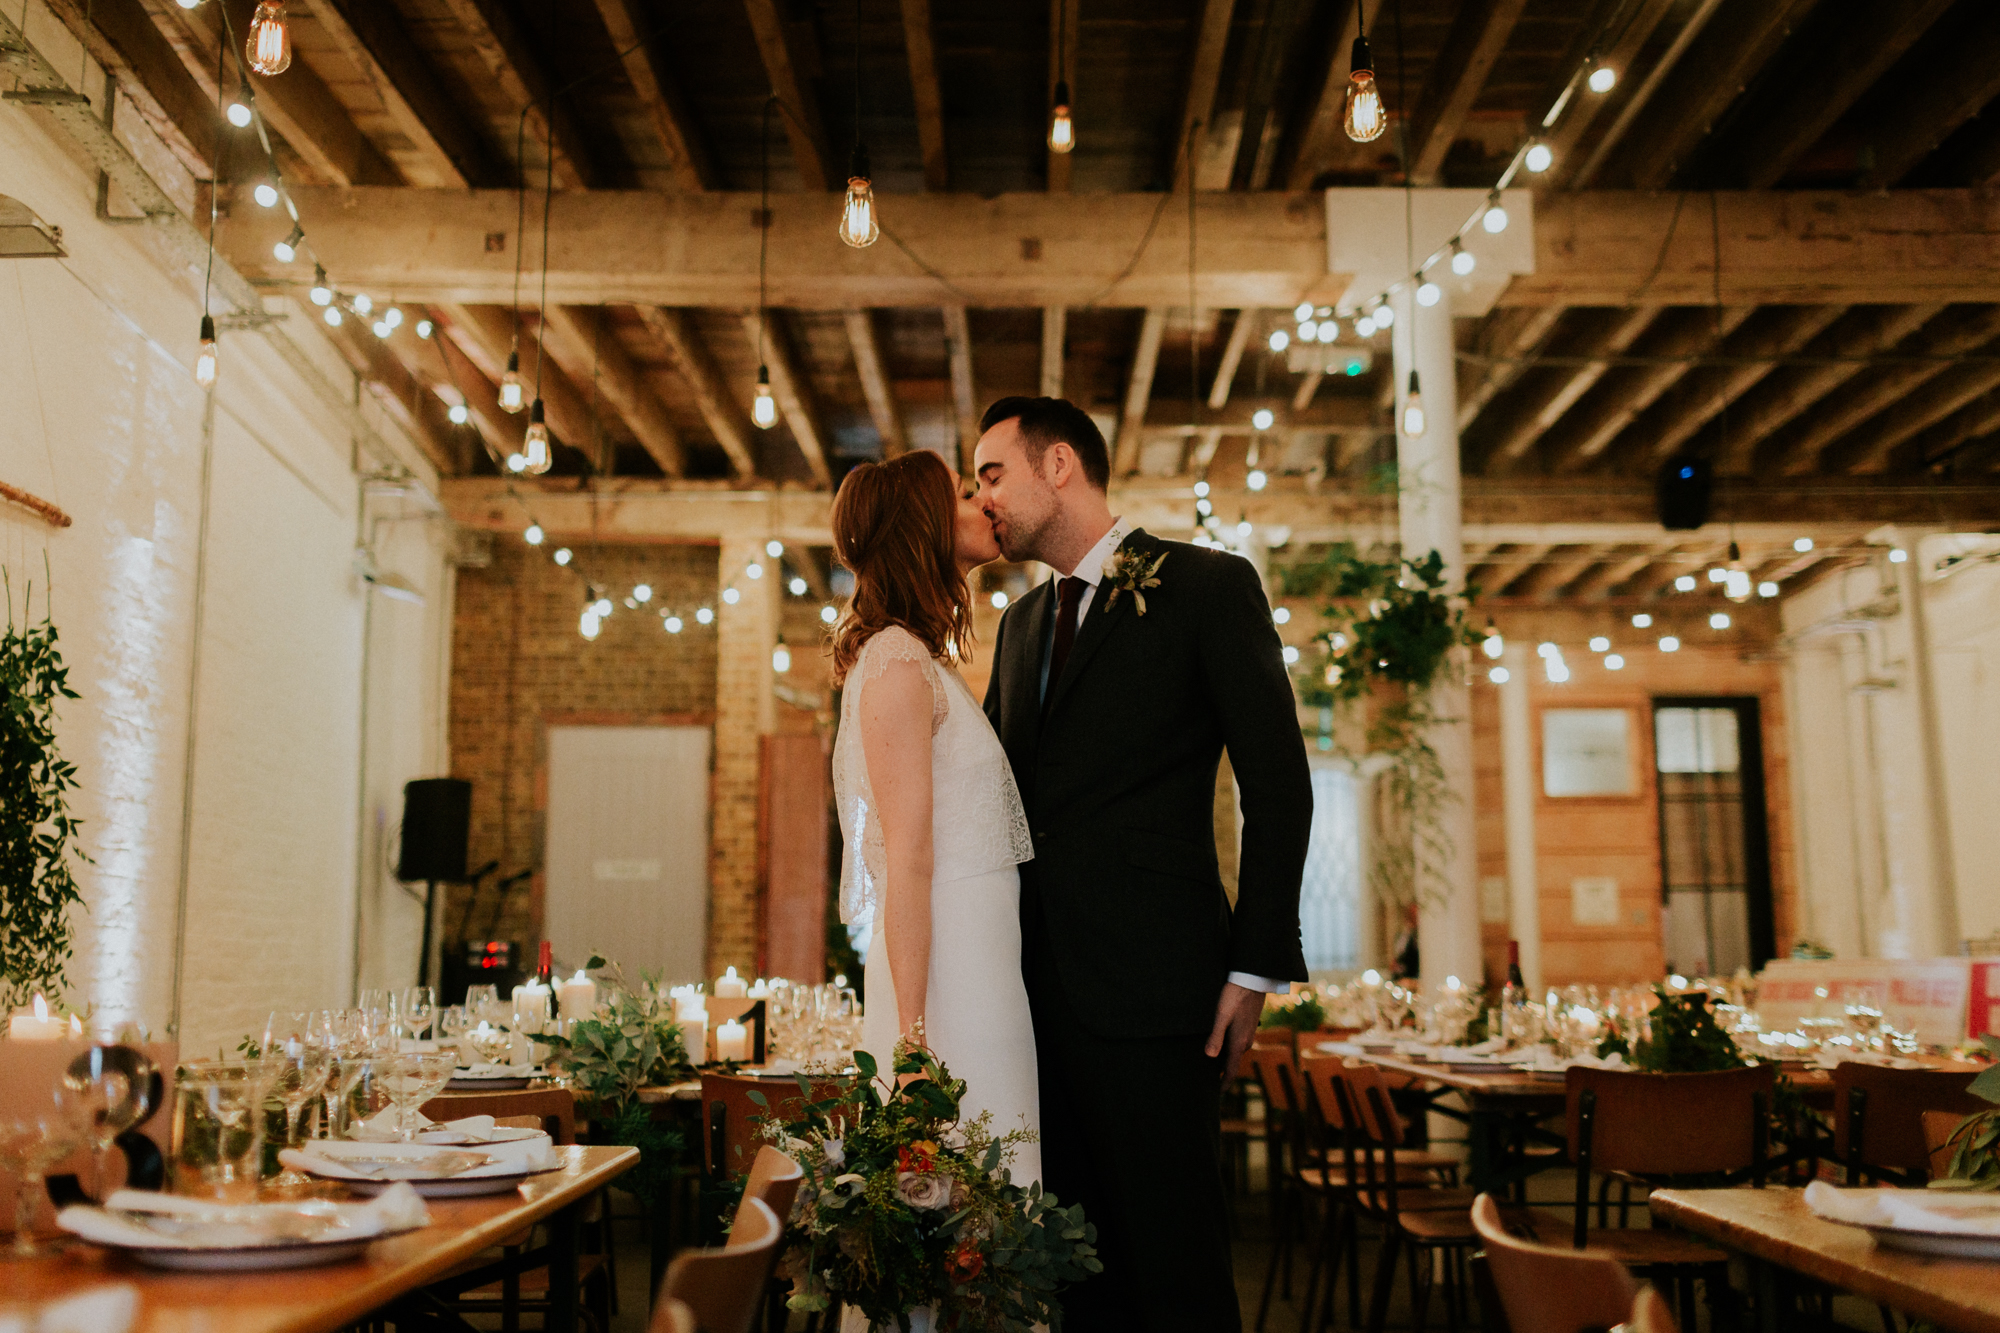 Unusual venue, Brixton East 1871 wedding, Just married, Bride & Groom, Filament bulbs, Warehouse Wedding, London wedding, Luis Calow Photography